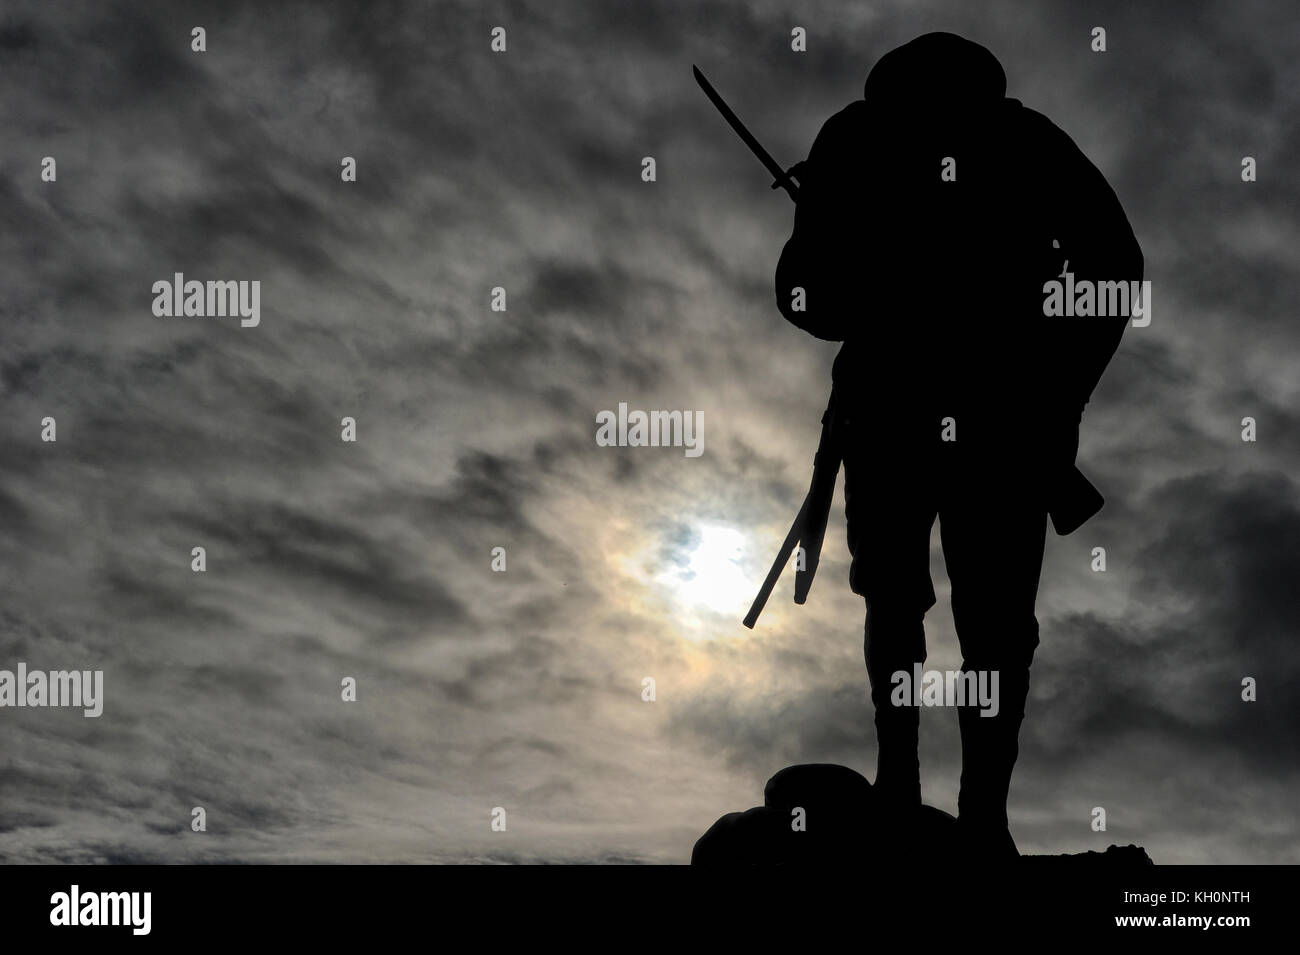 Chorley, Lancashire, UK. 11th Nov, 2017. The Chorley Pals memorial in Chorley, Lancashire, silhouetted against the - Stock Image